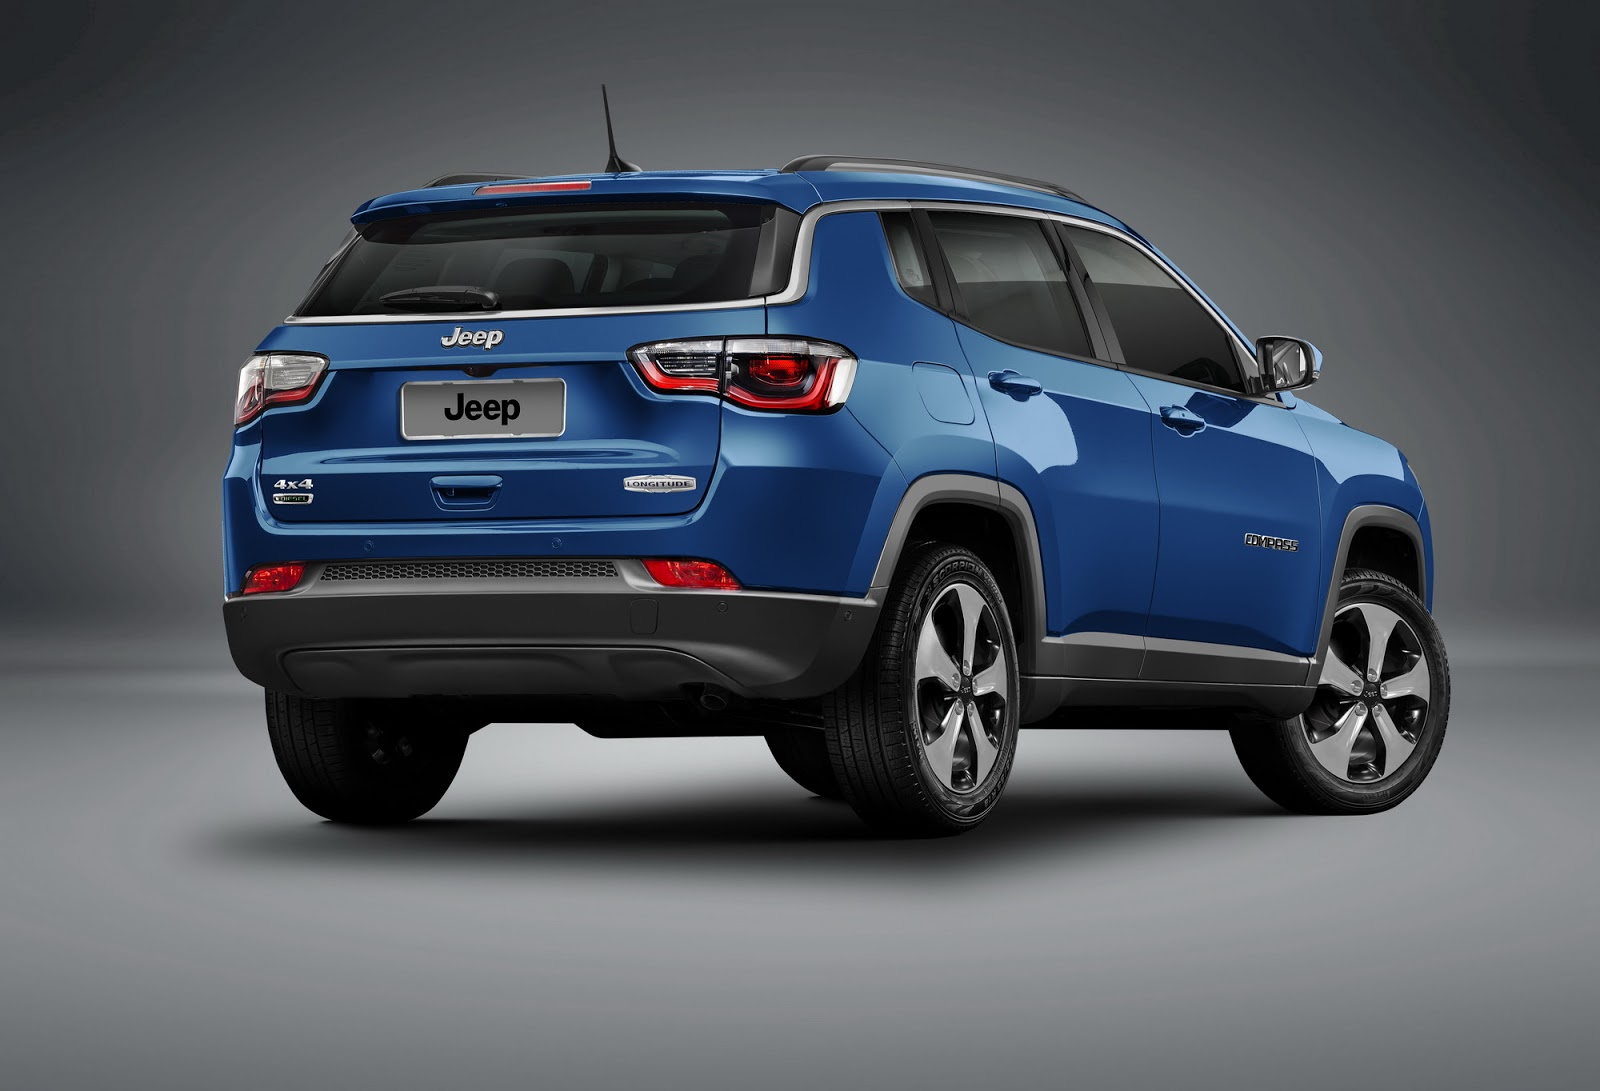 2017 jeep compass priced from 20 995 in the united states autoevolution. Black Bedroom Furniture Sets. Home Design Ideas